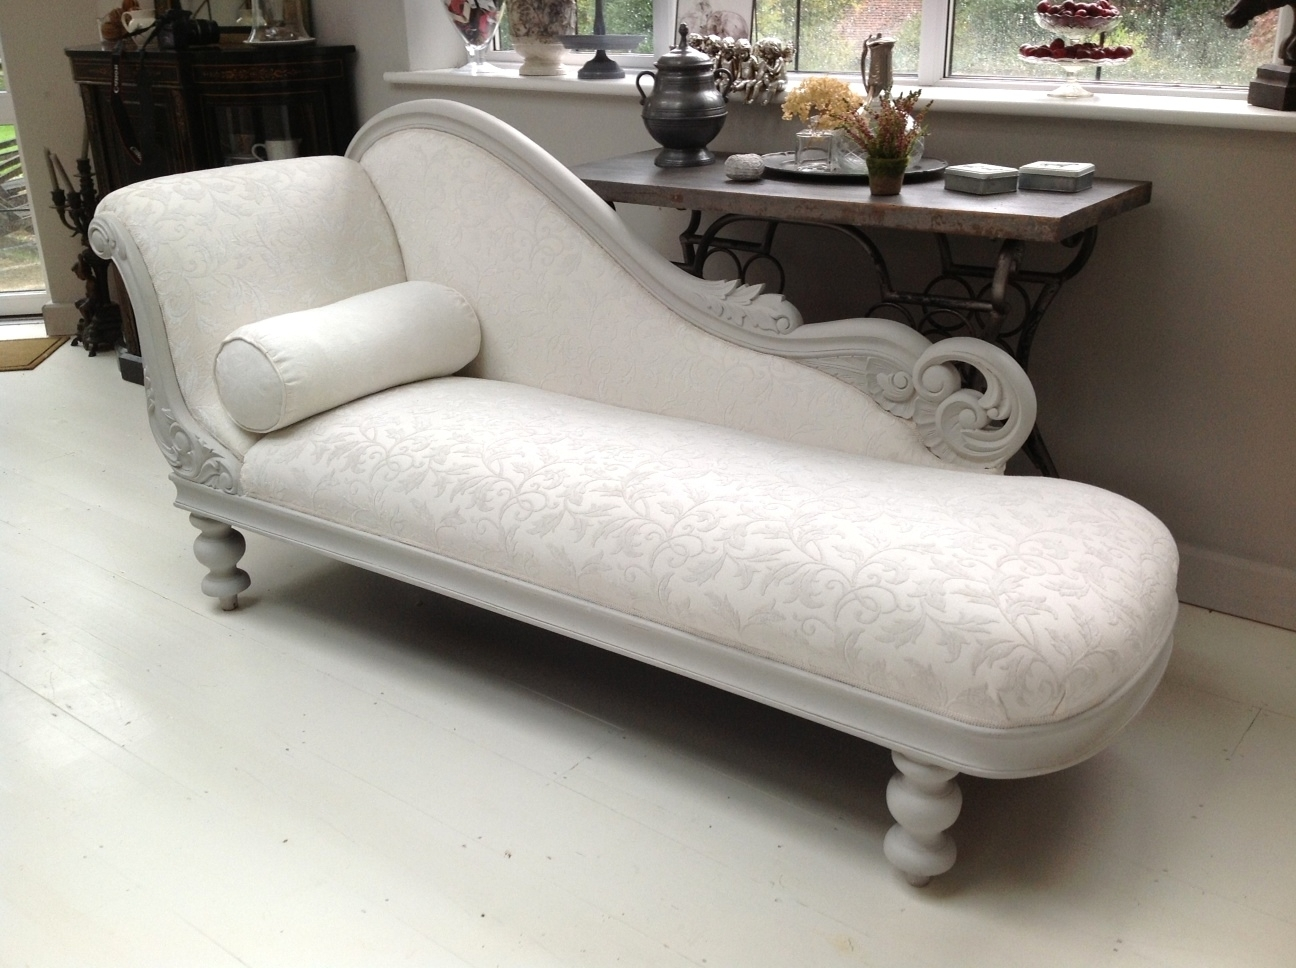 A Dazzling Chaise Longue, Painted In Annie Sloan™ Chalk Paint Pertaining To 2017 Damask Chaise Lounge Chairs (View 3 of 15)